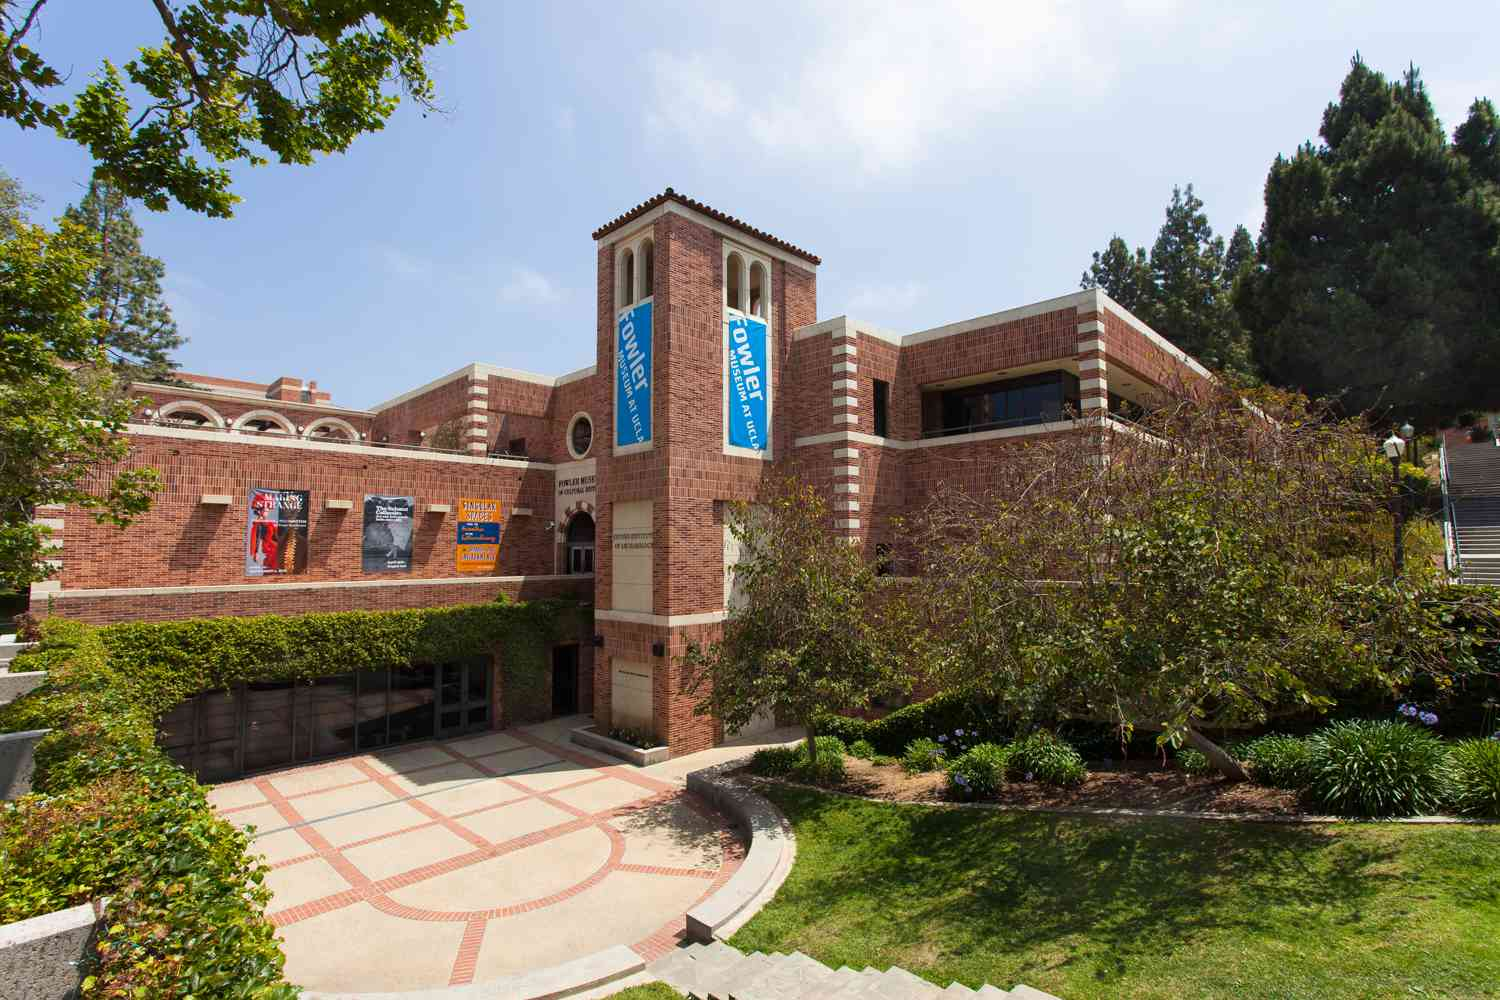 The Fowler Museum at UCLA